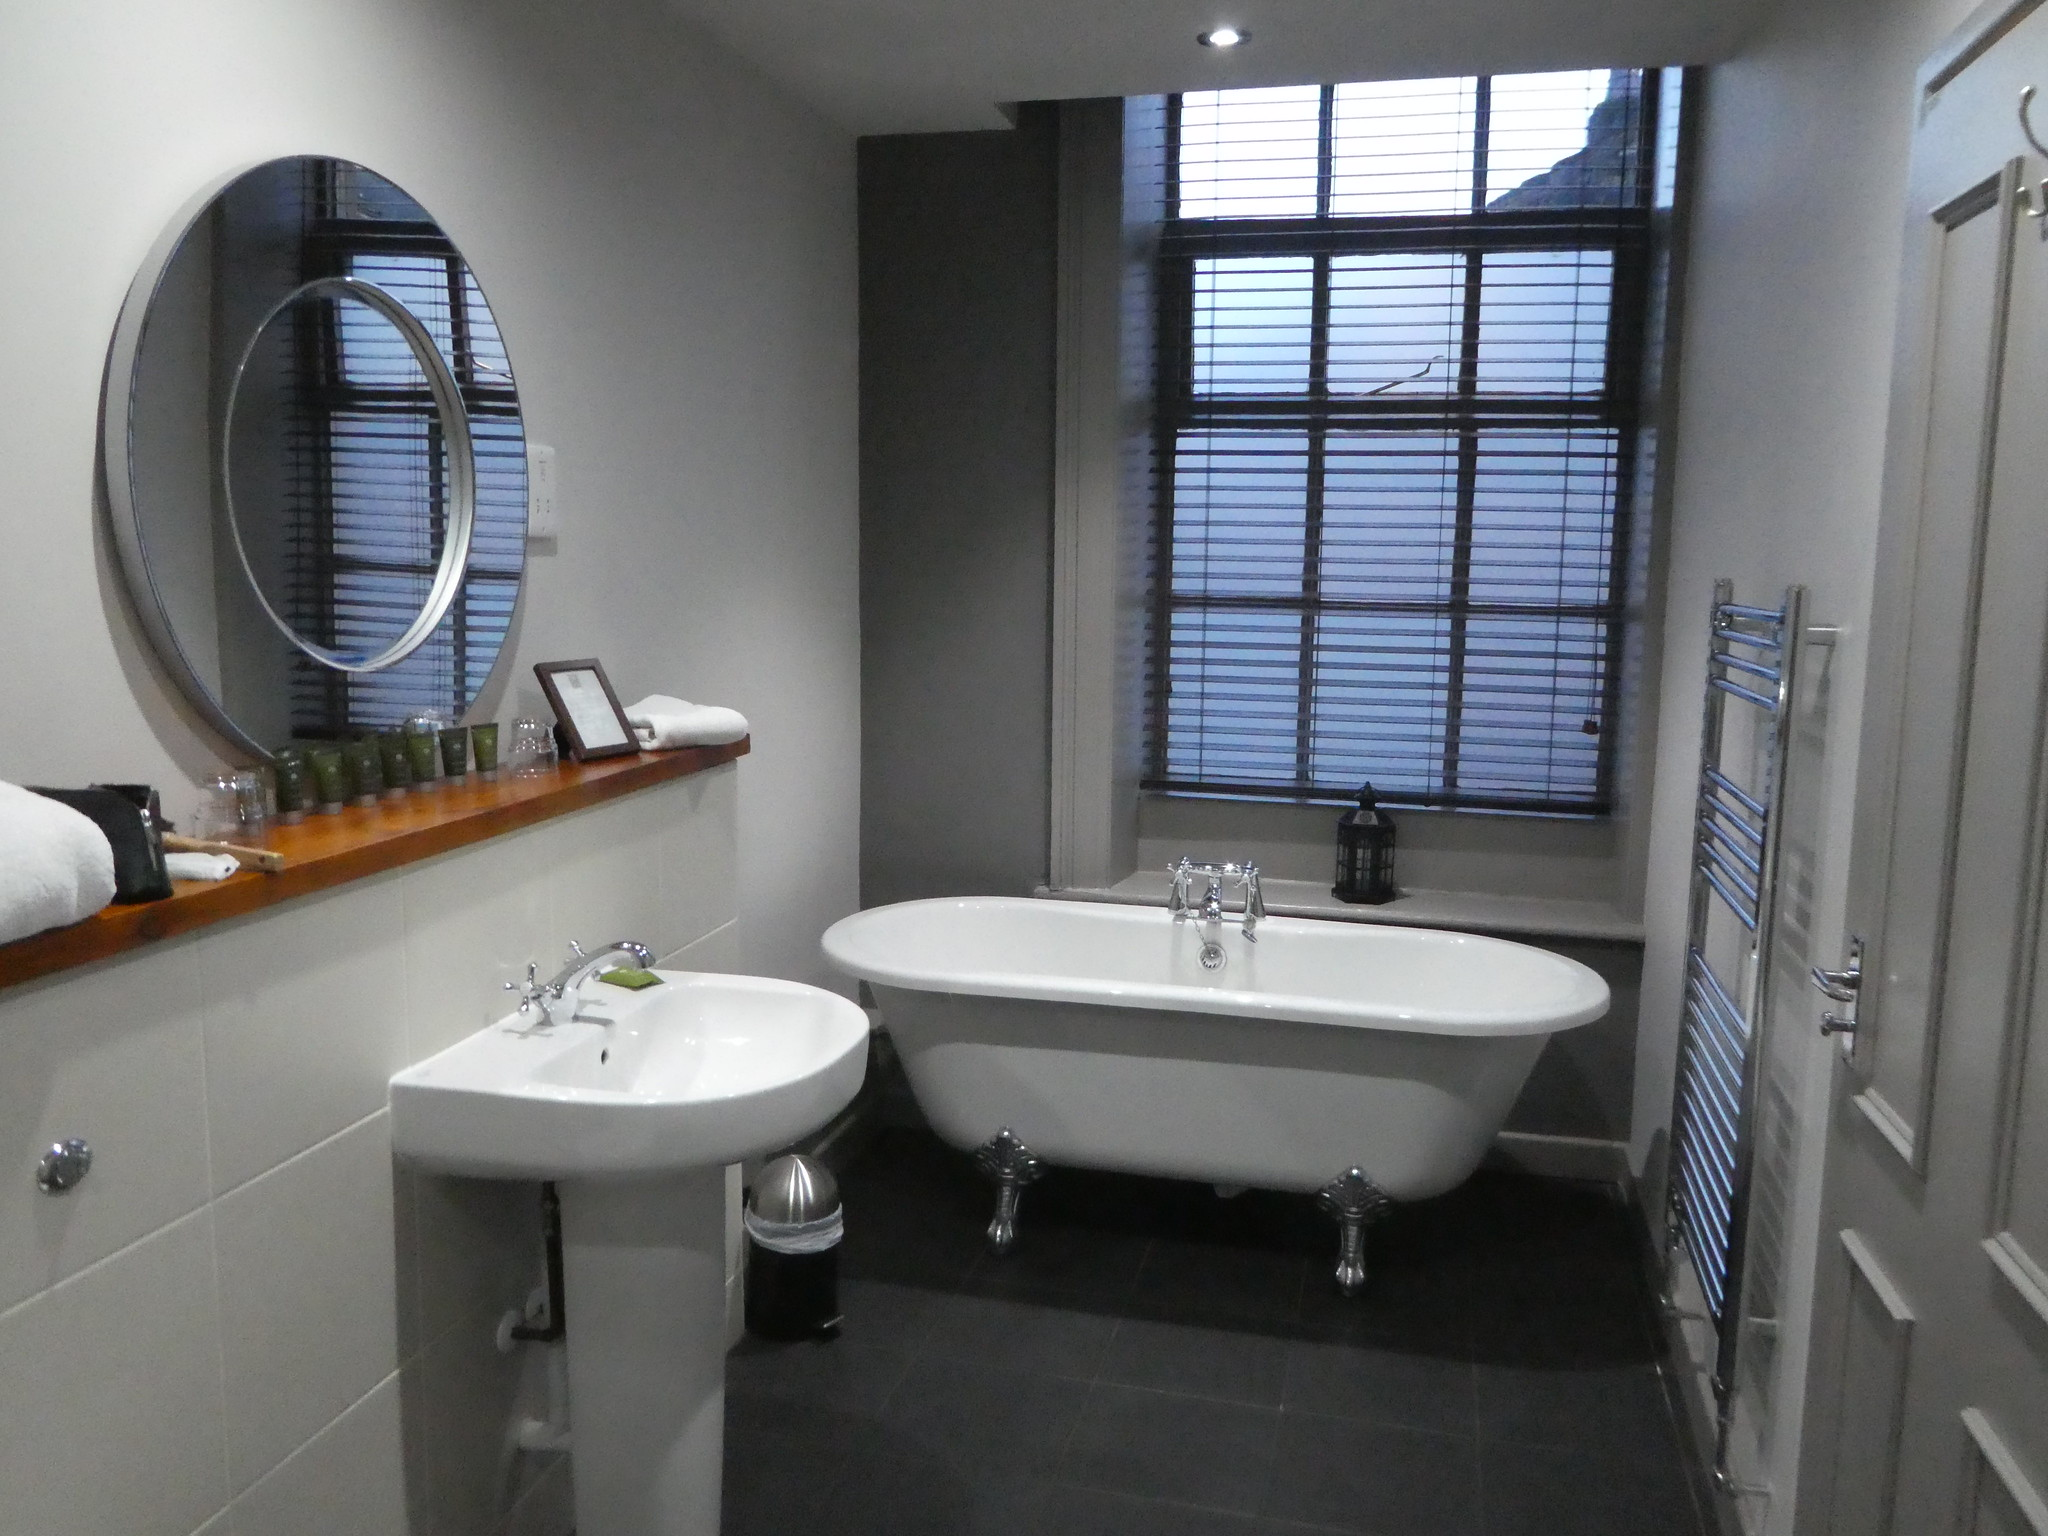 Our stylish bathroom at the White Lion Hotel, Hebden Bridge